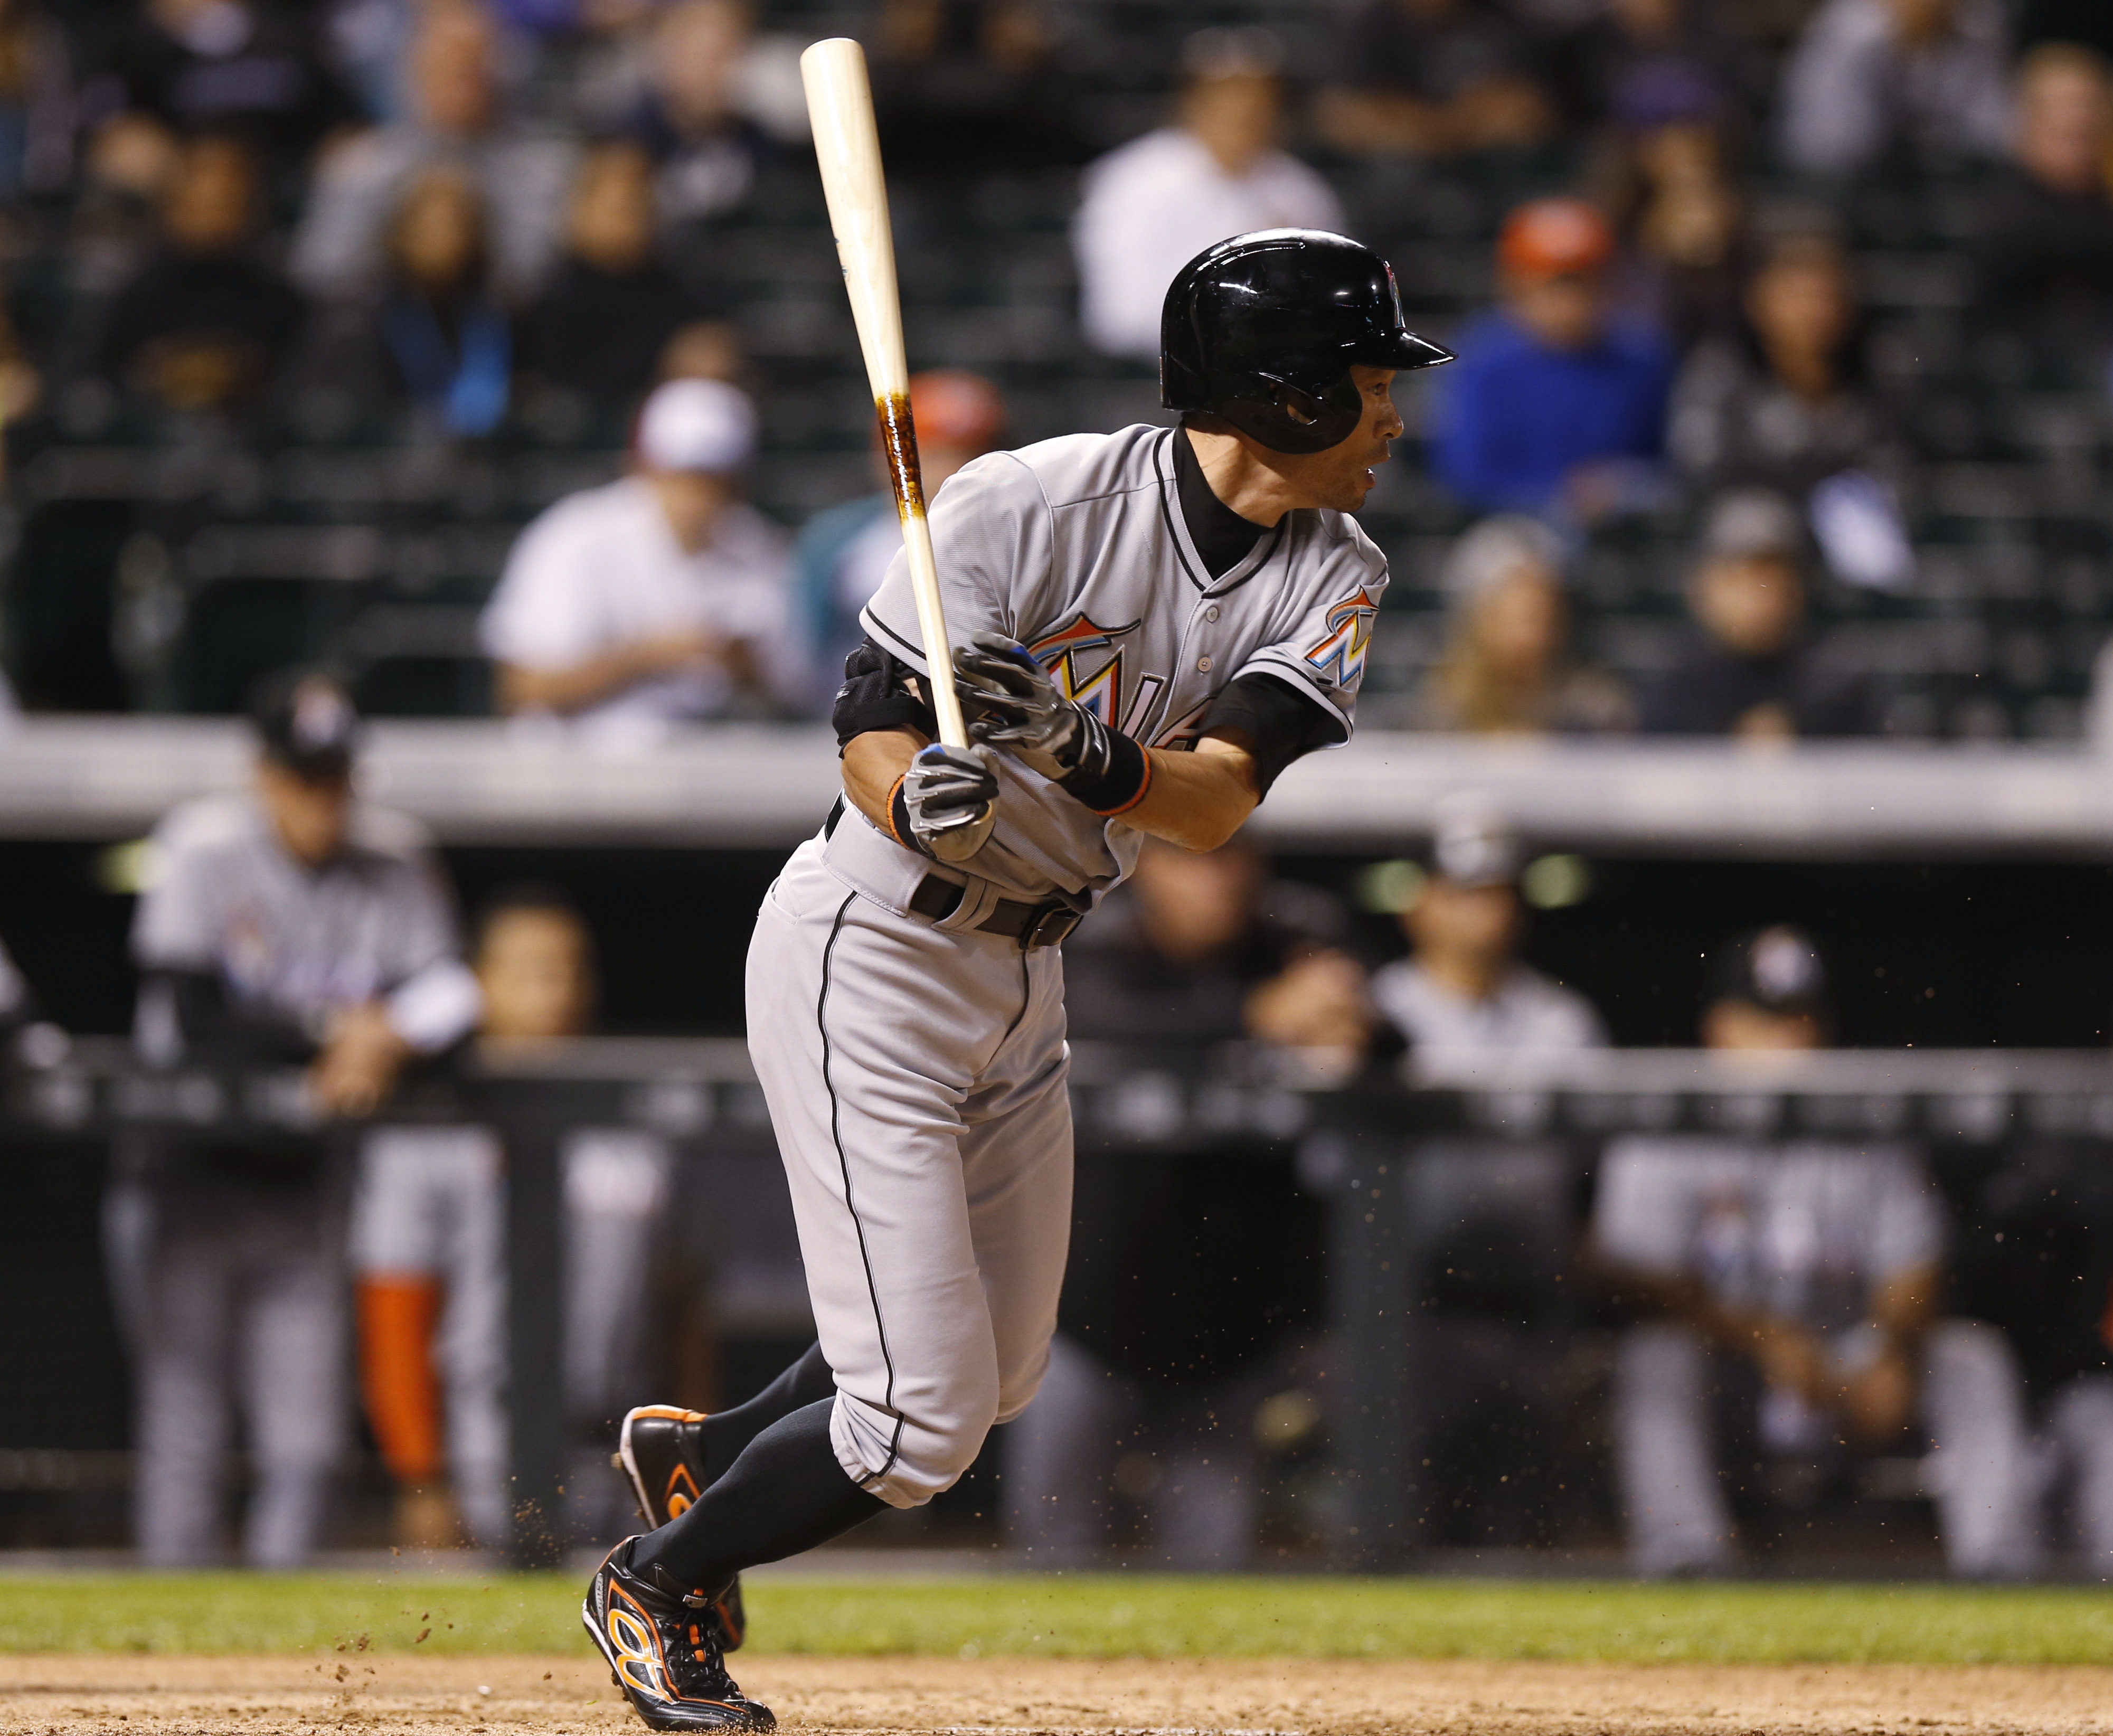 Miami Marlins pinch-hitter Ichiro Suzuki grounds out against the Colorado Rockies in the eighth inning of a baseball game Friday, June 5, 2015, in Denver. The Marlins won 6-2. (AP Photo/David Zalubowski)